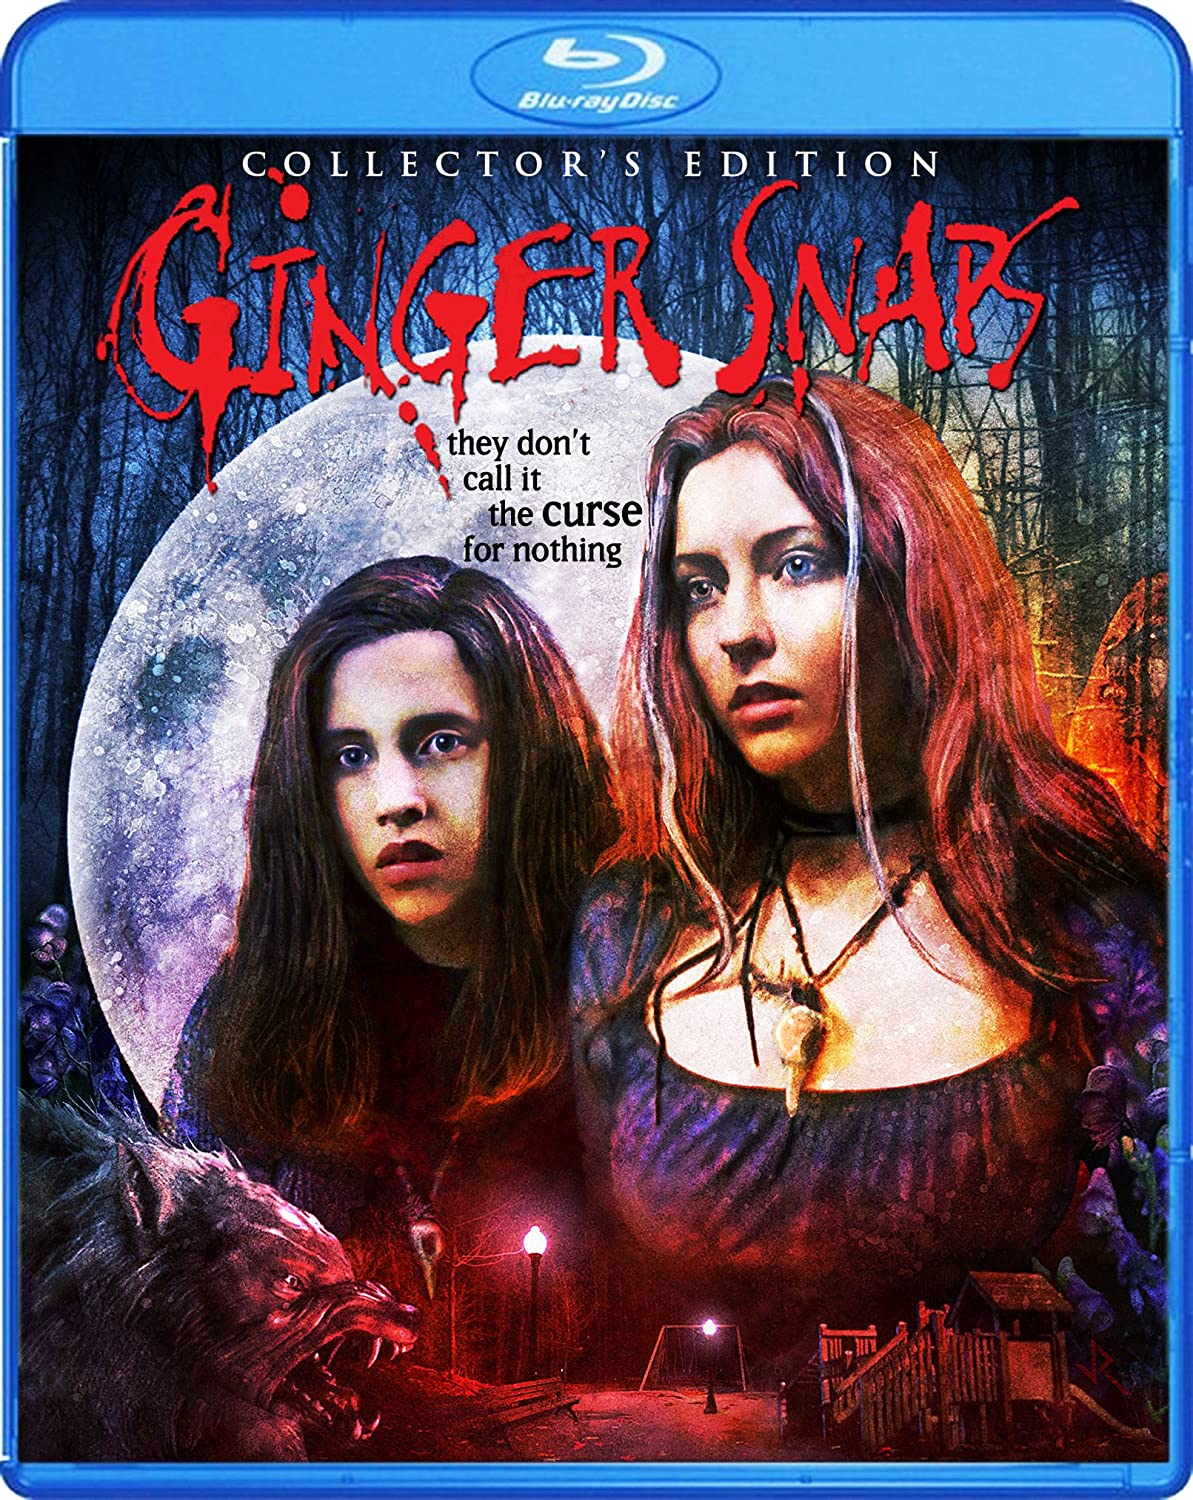 days of horror and supernatural ginger snaps the pit ginger snaps follows two sisters who are fascinated death when looking to get back at a certain high school mean girl one gets attacked by a werewolf